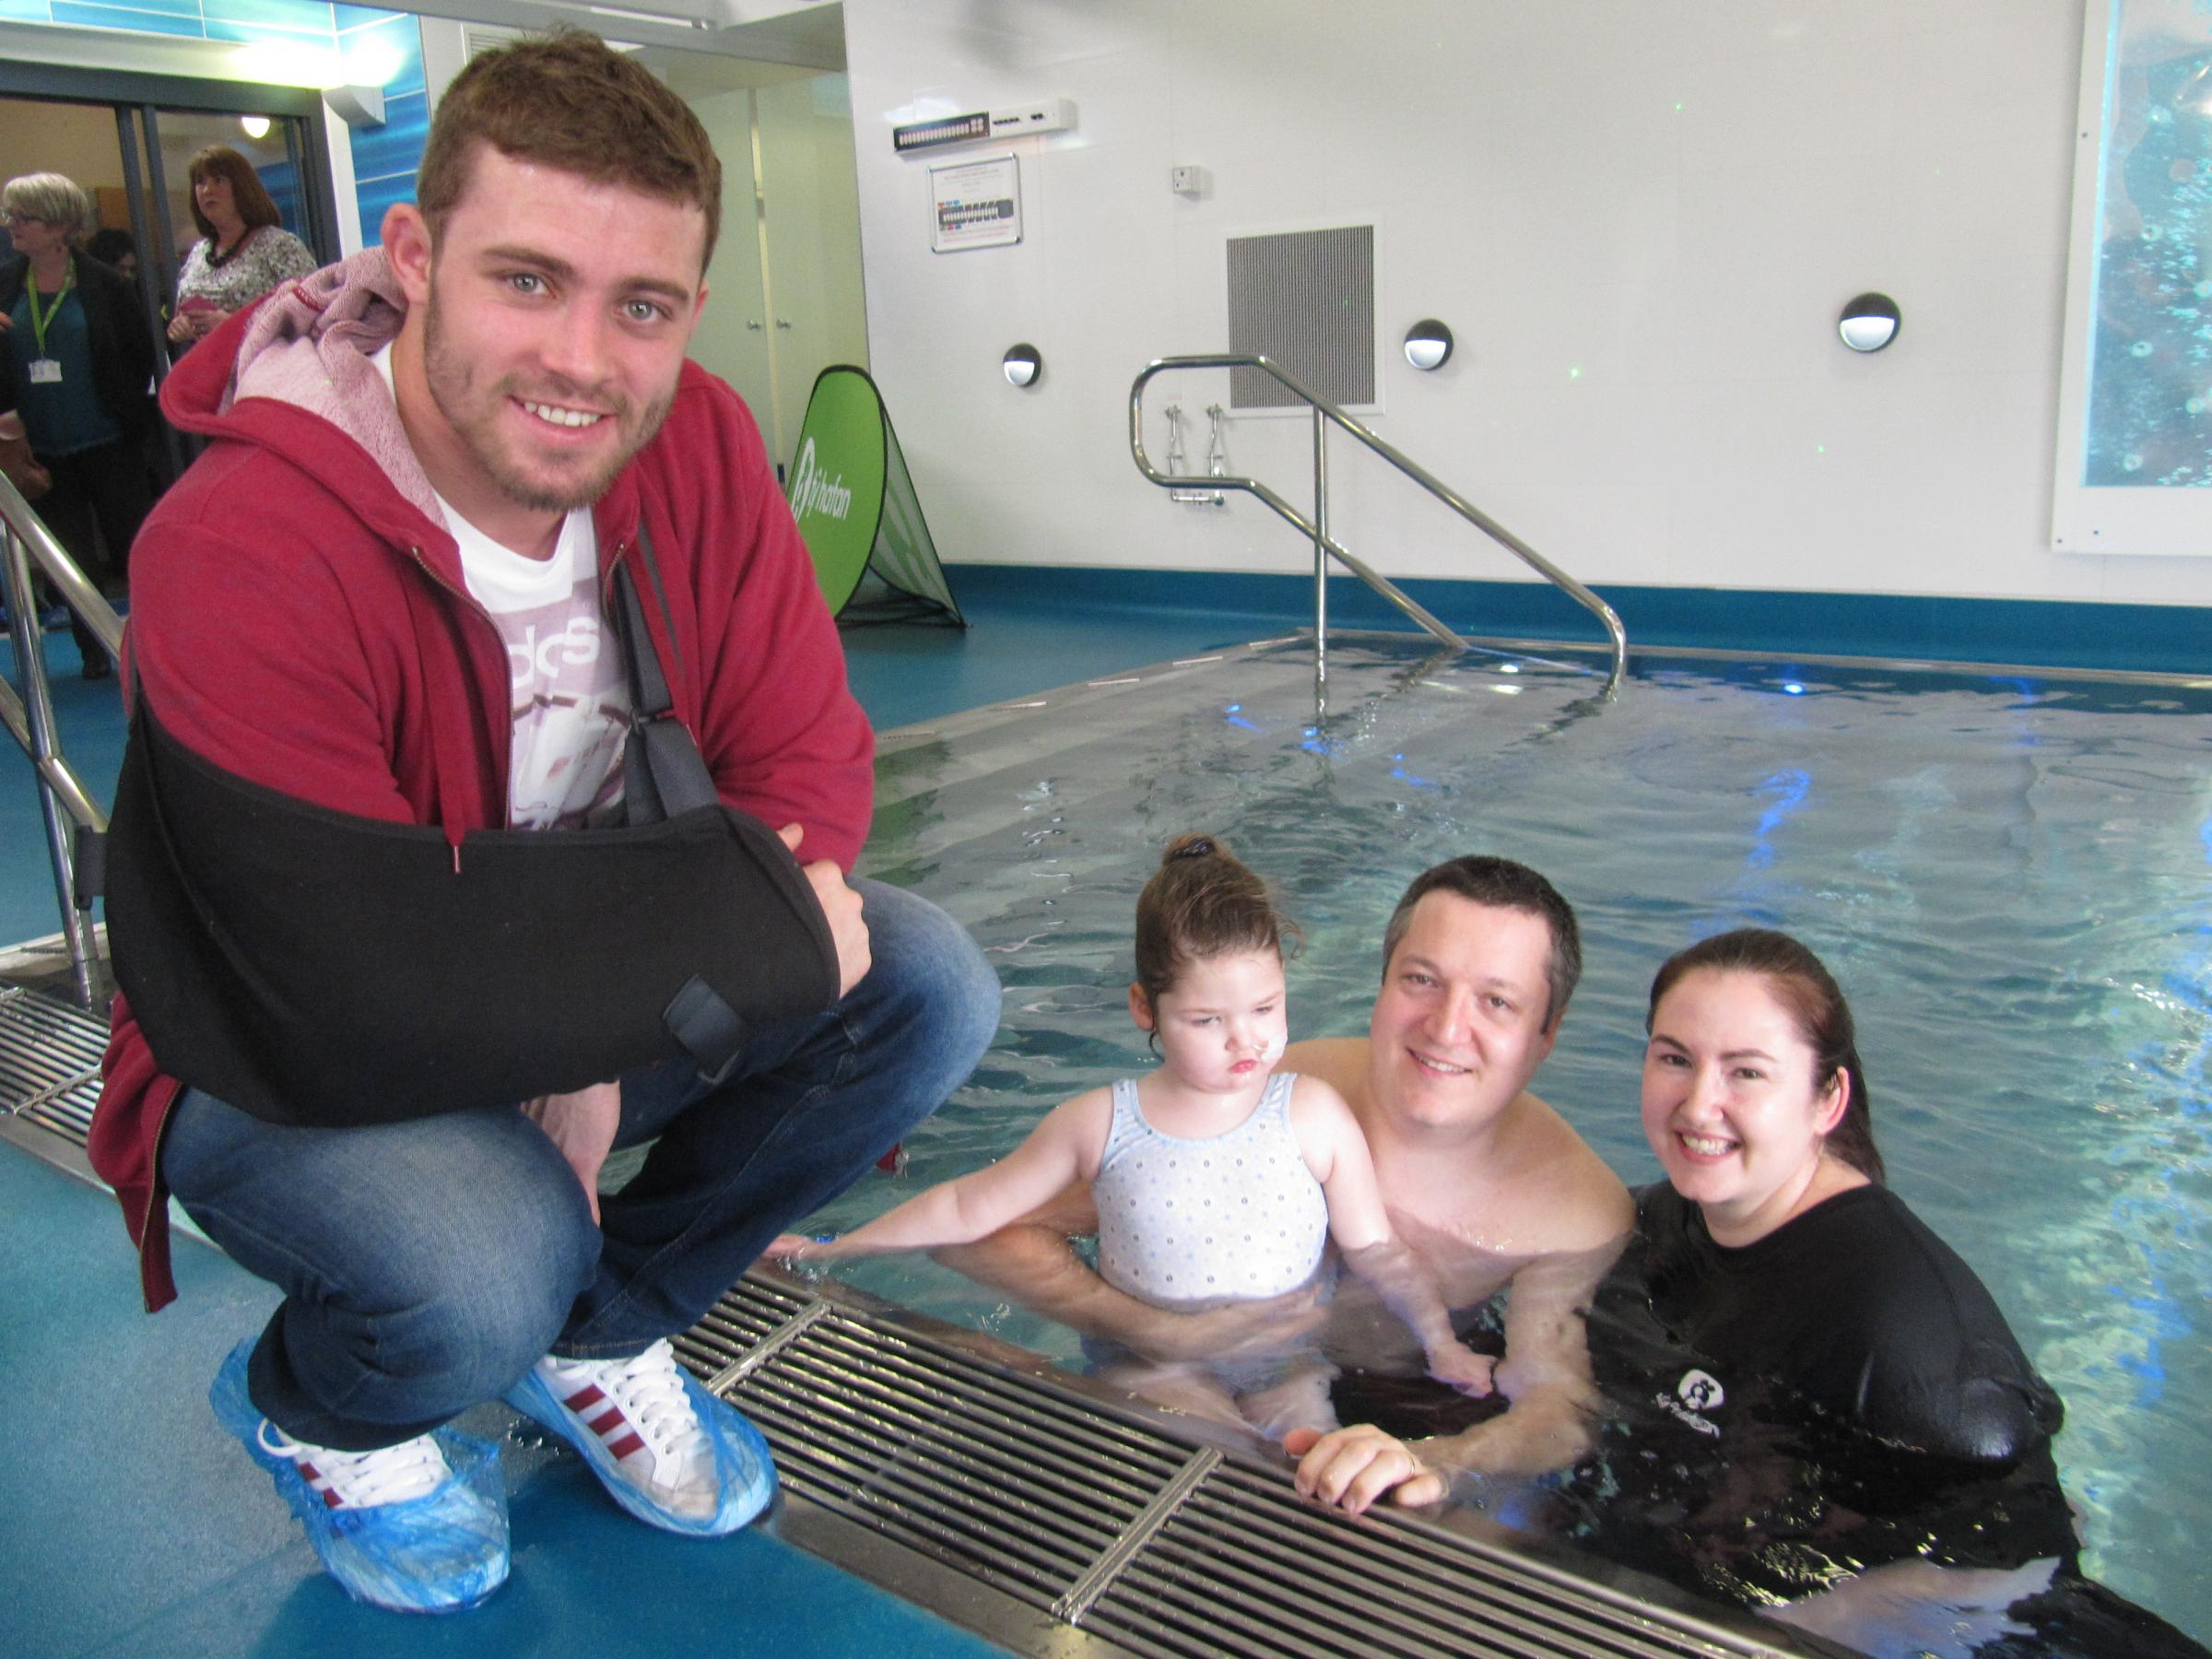 Welsh rugby star Leigh opens hydrotherapy pool at children's hospice